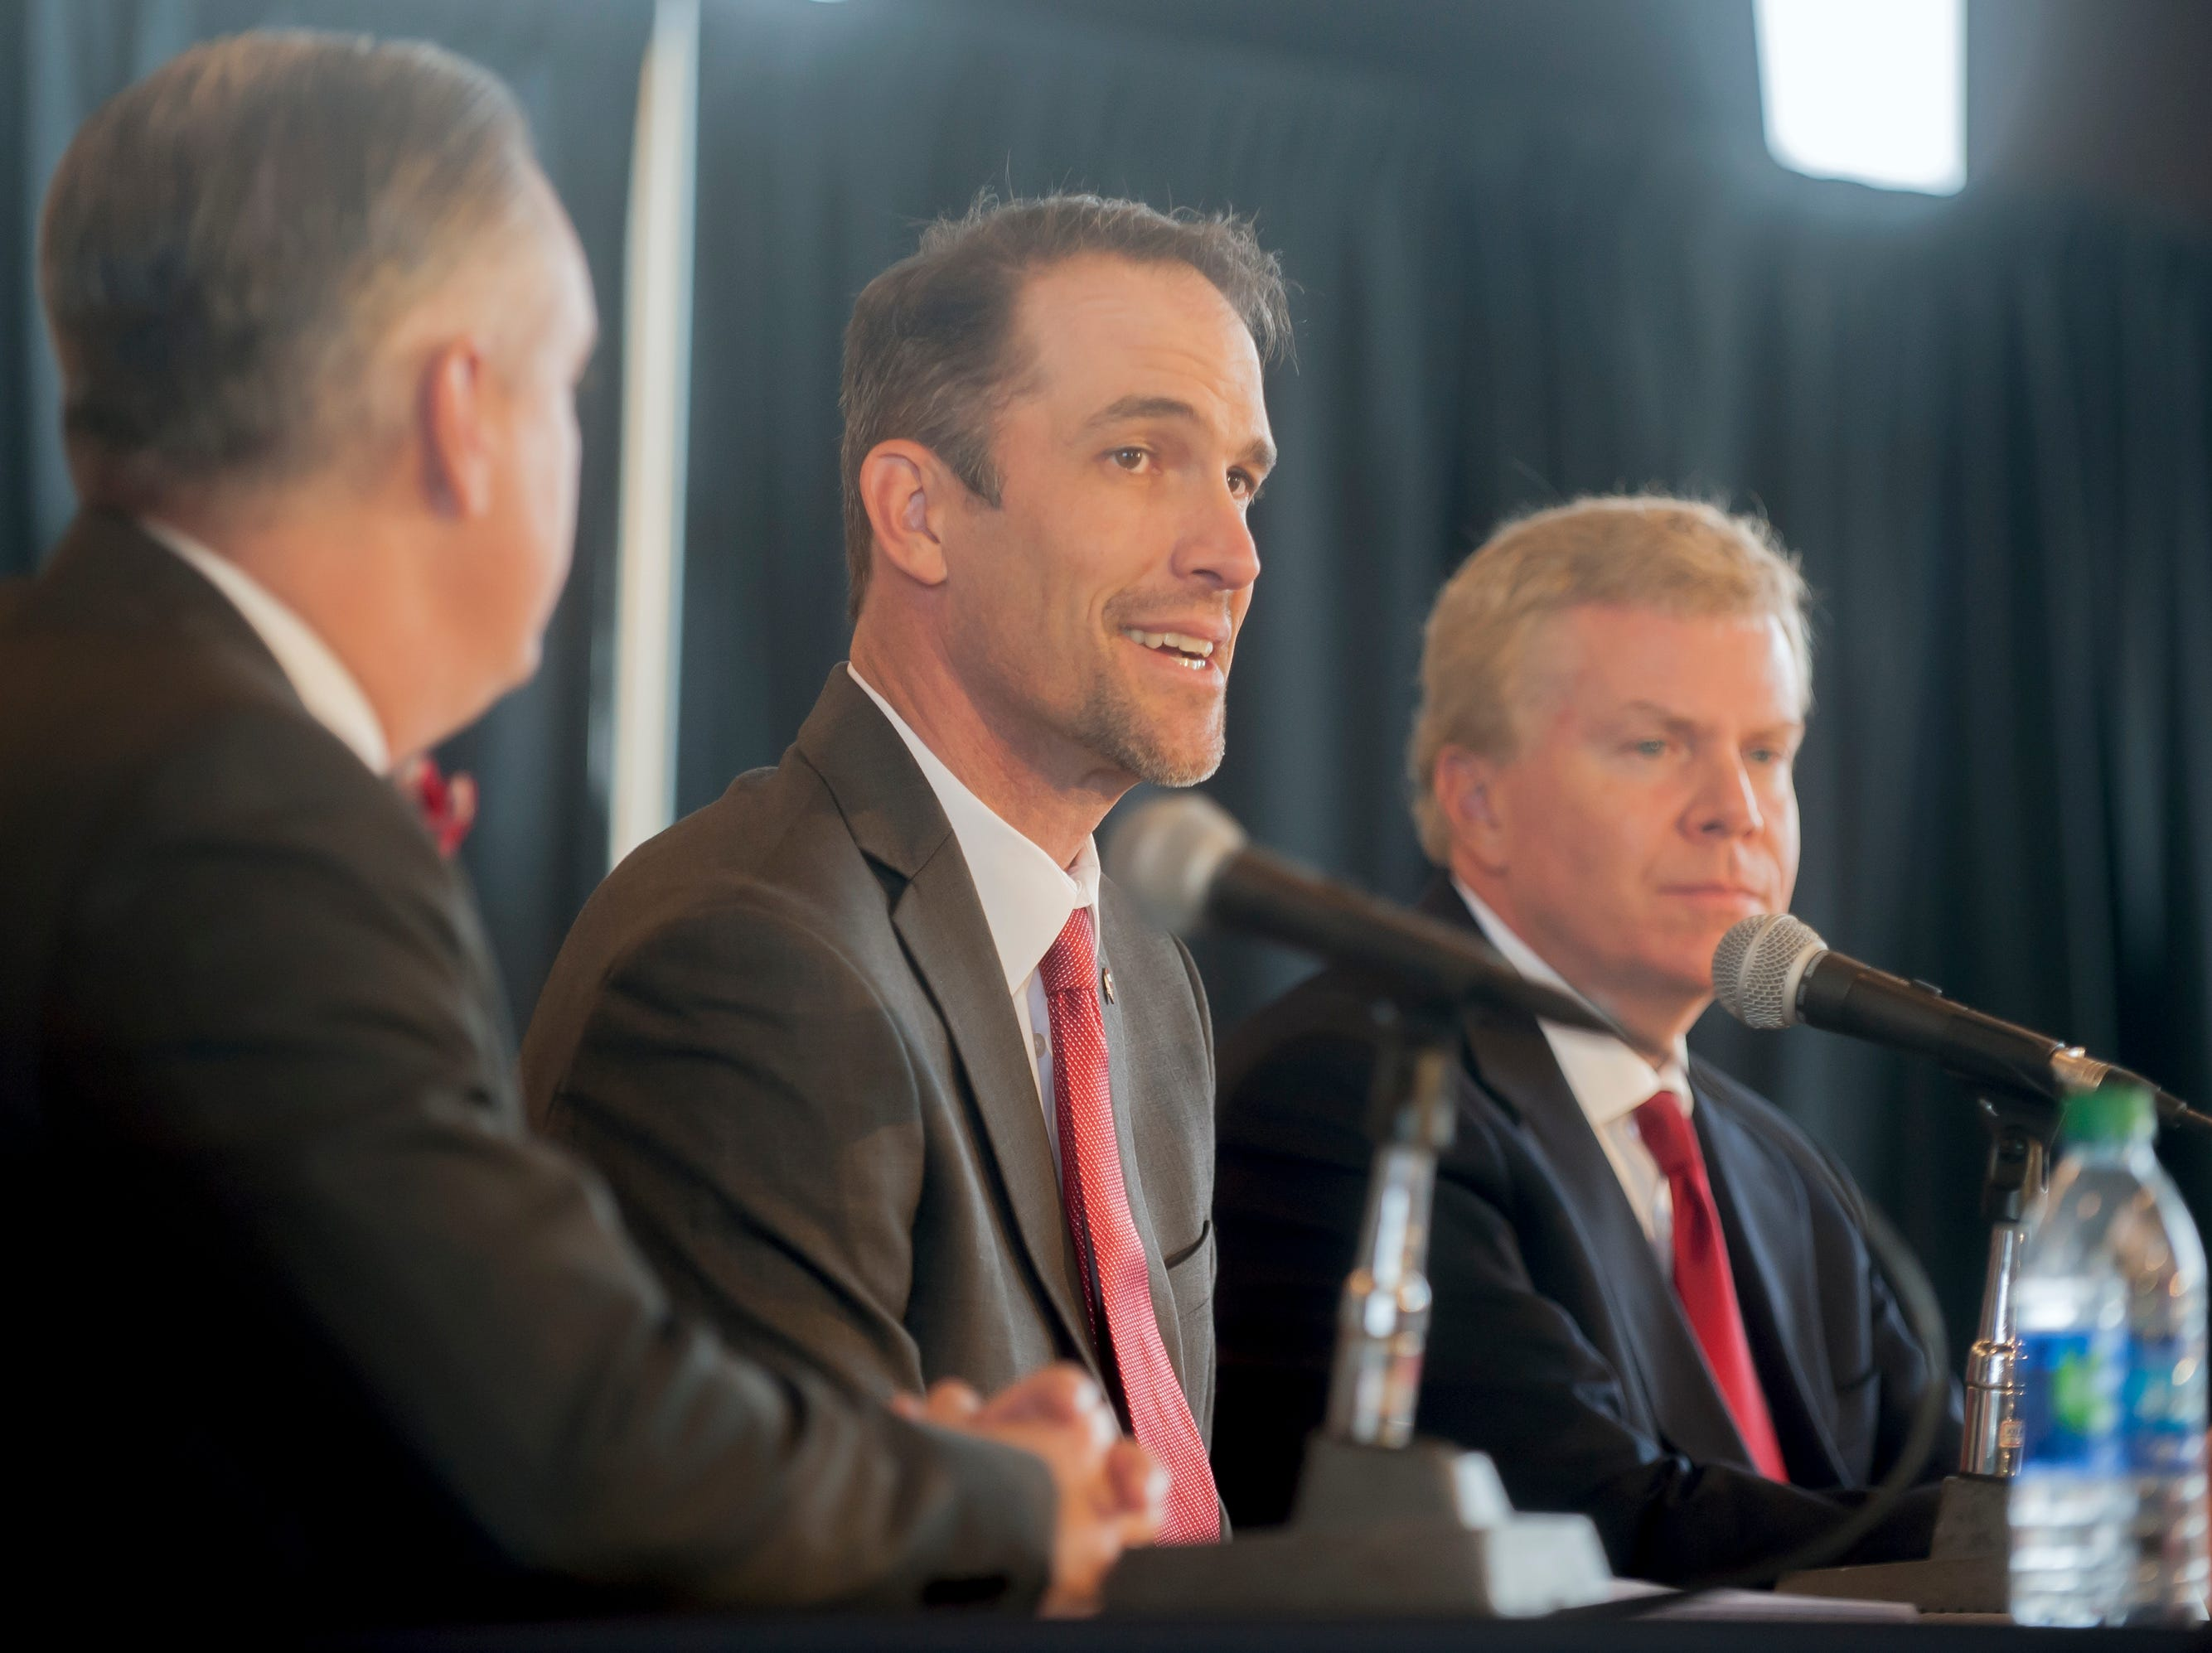 Western Kentucky's new head football coach Tyson Helton, center, speaks as WKU president Tim Caboni, left, and athletic director Todd Stewart, right,  listen during an NCAA college football press conference, Tuesday, Nov. 27, 2018, at the Jack and Jackie Harbaugh Stadium Club at Houchens-Smith Stadium in Bowling Green, Ky.